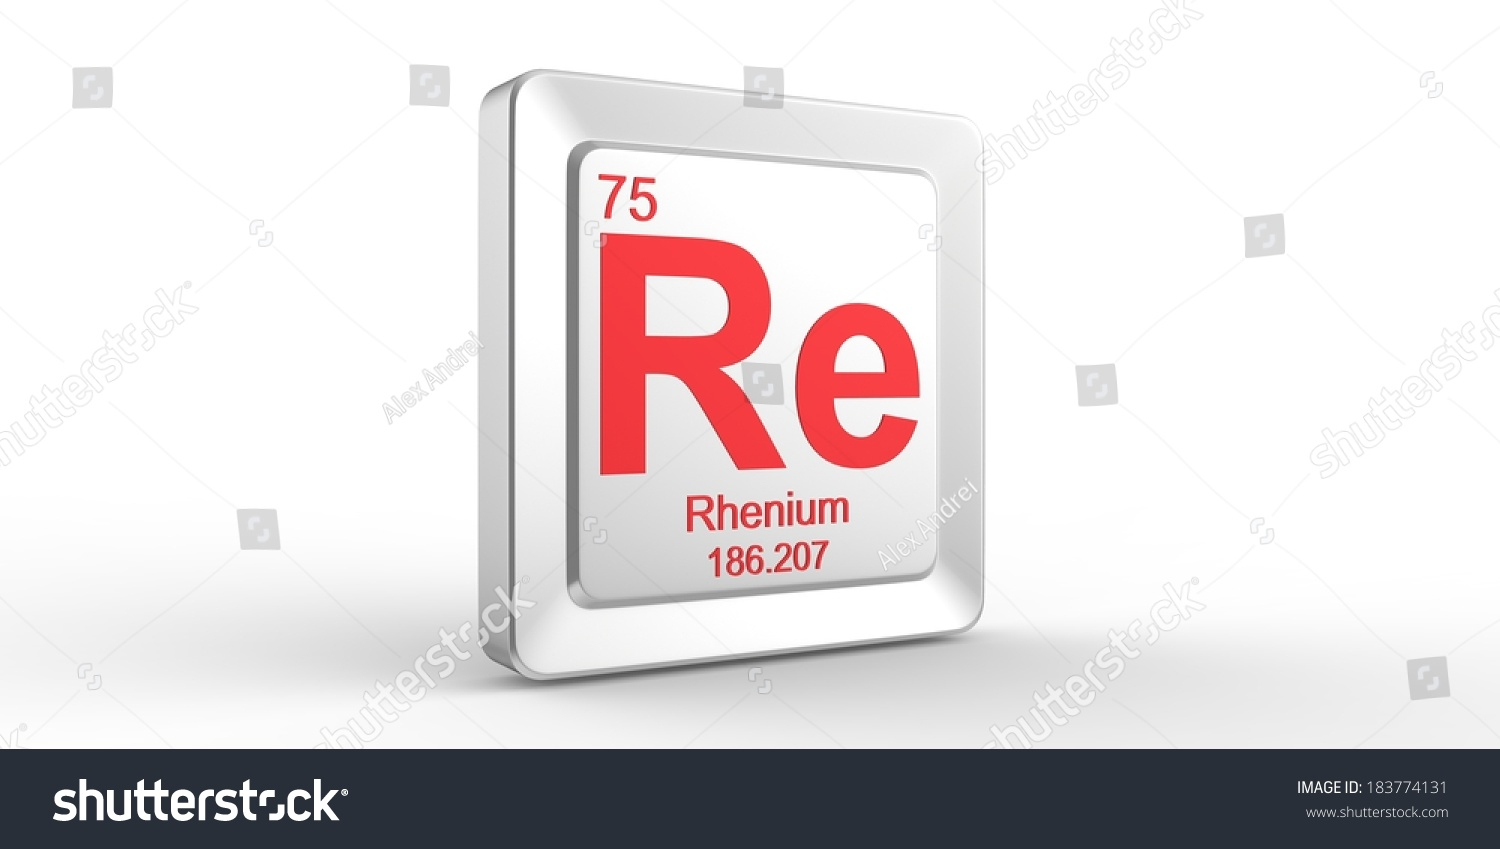 Re element periodic table choice image periodic table images re element periodic table gallery periodic table images re element periodic table gallery periodic table images gamestrikefo Choice Image